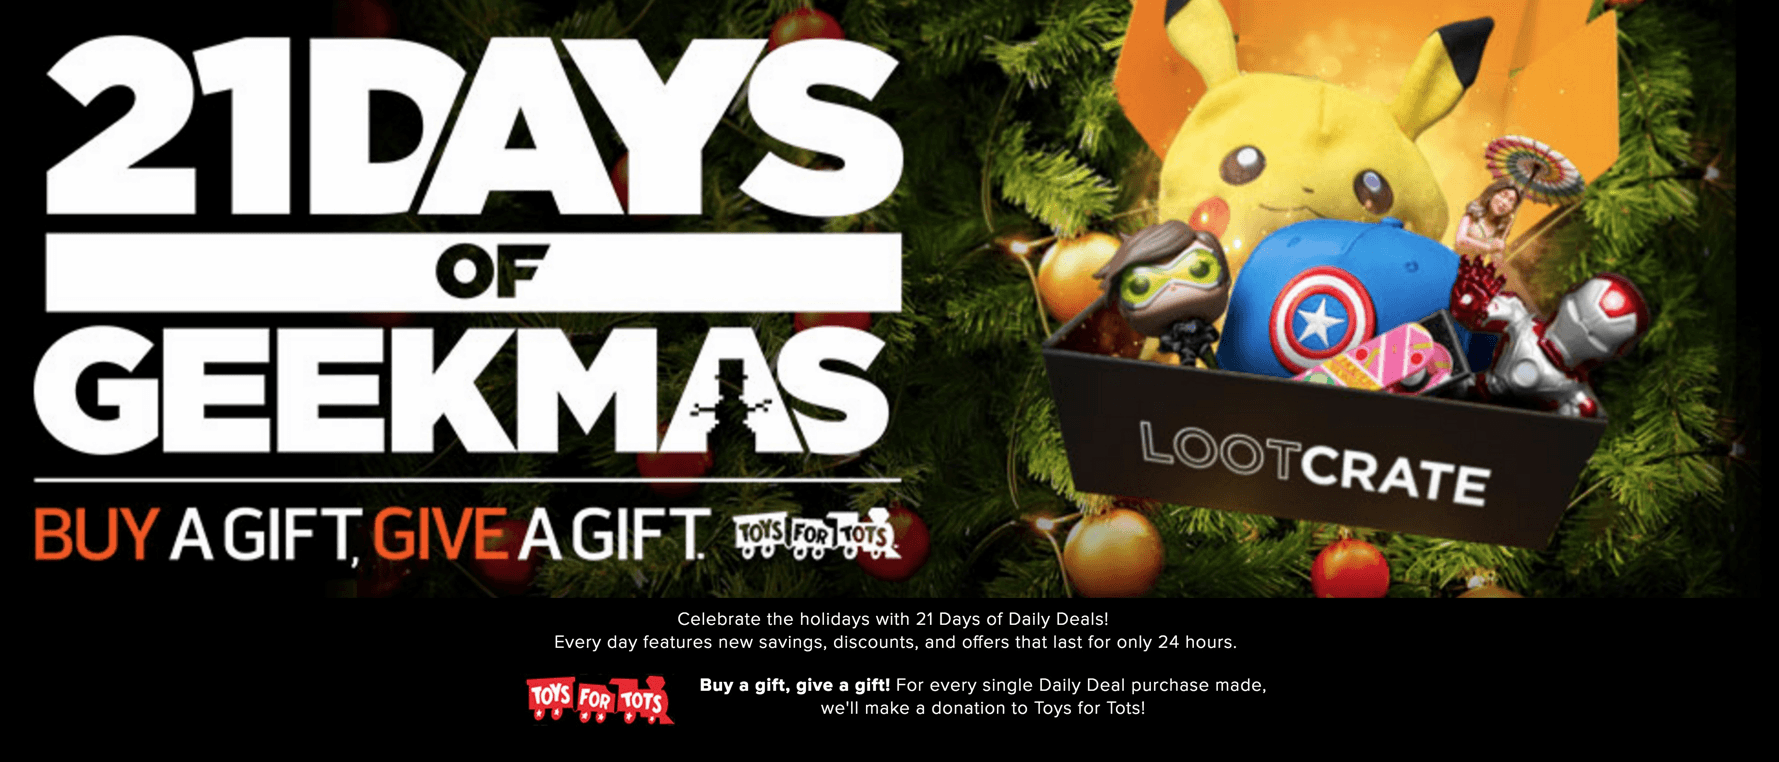 Loot Crate Geekmas Deal: 20% Off Marvel Gear+Goods & Gears of War 4 Crate!